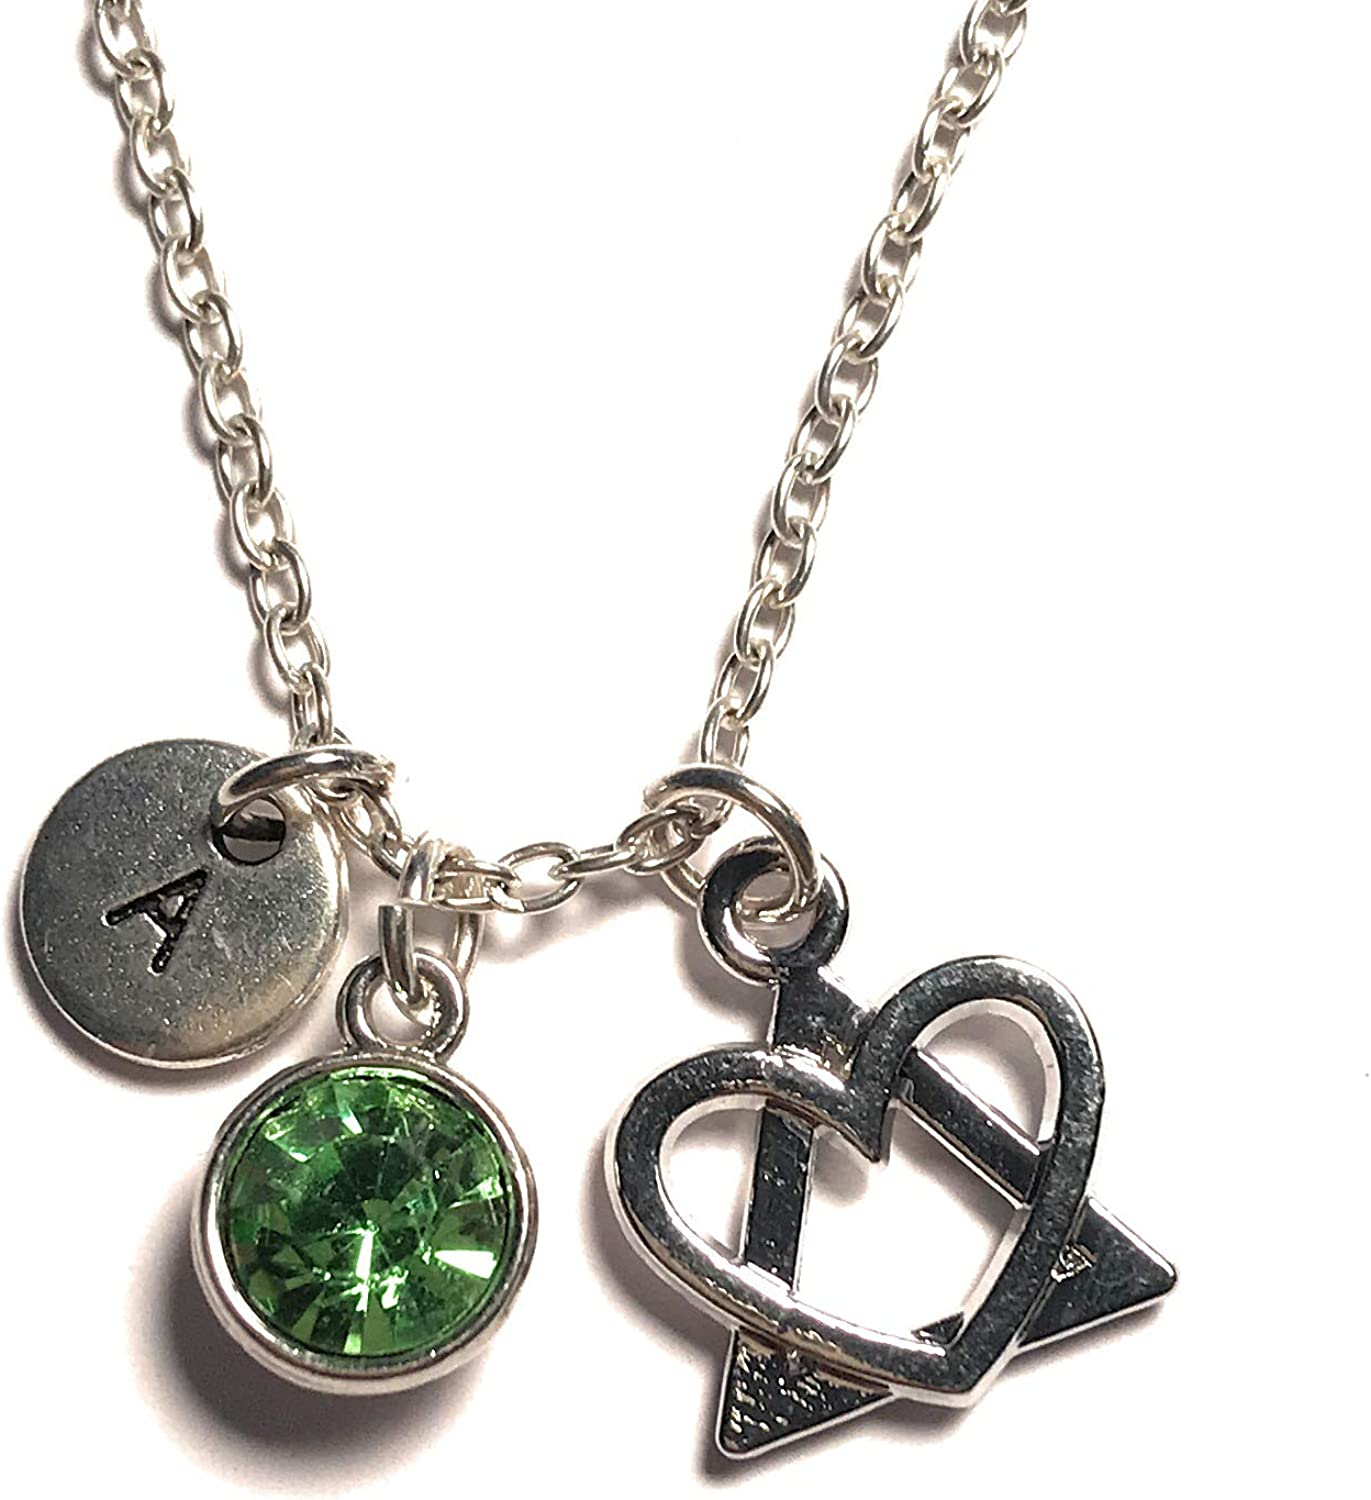 Adoption Necklace Initial Letter Birthstone Silver Charm Pendant Customized Jewelry Gift